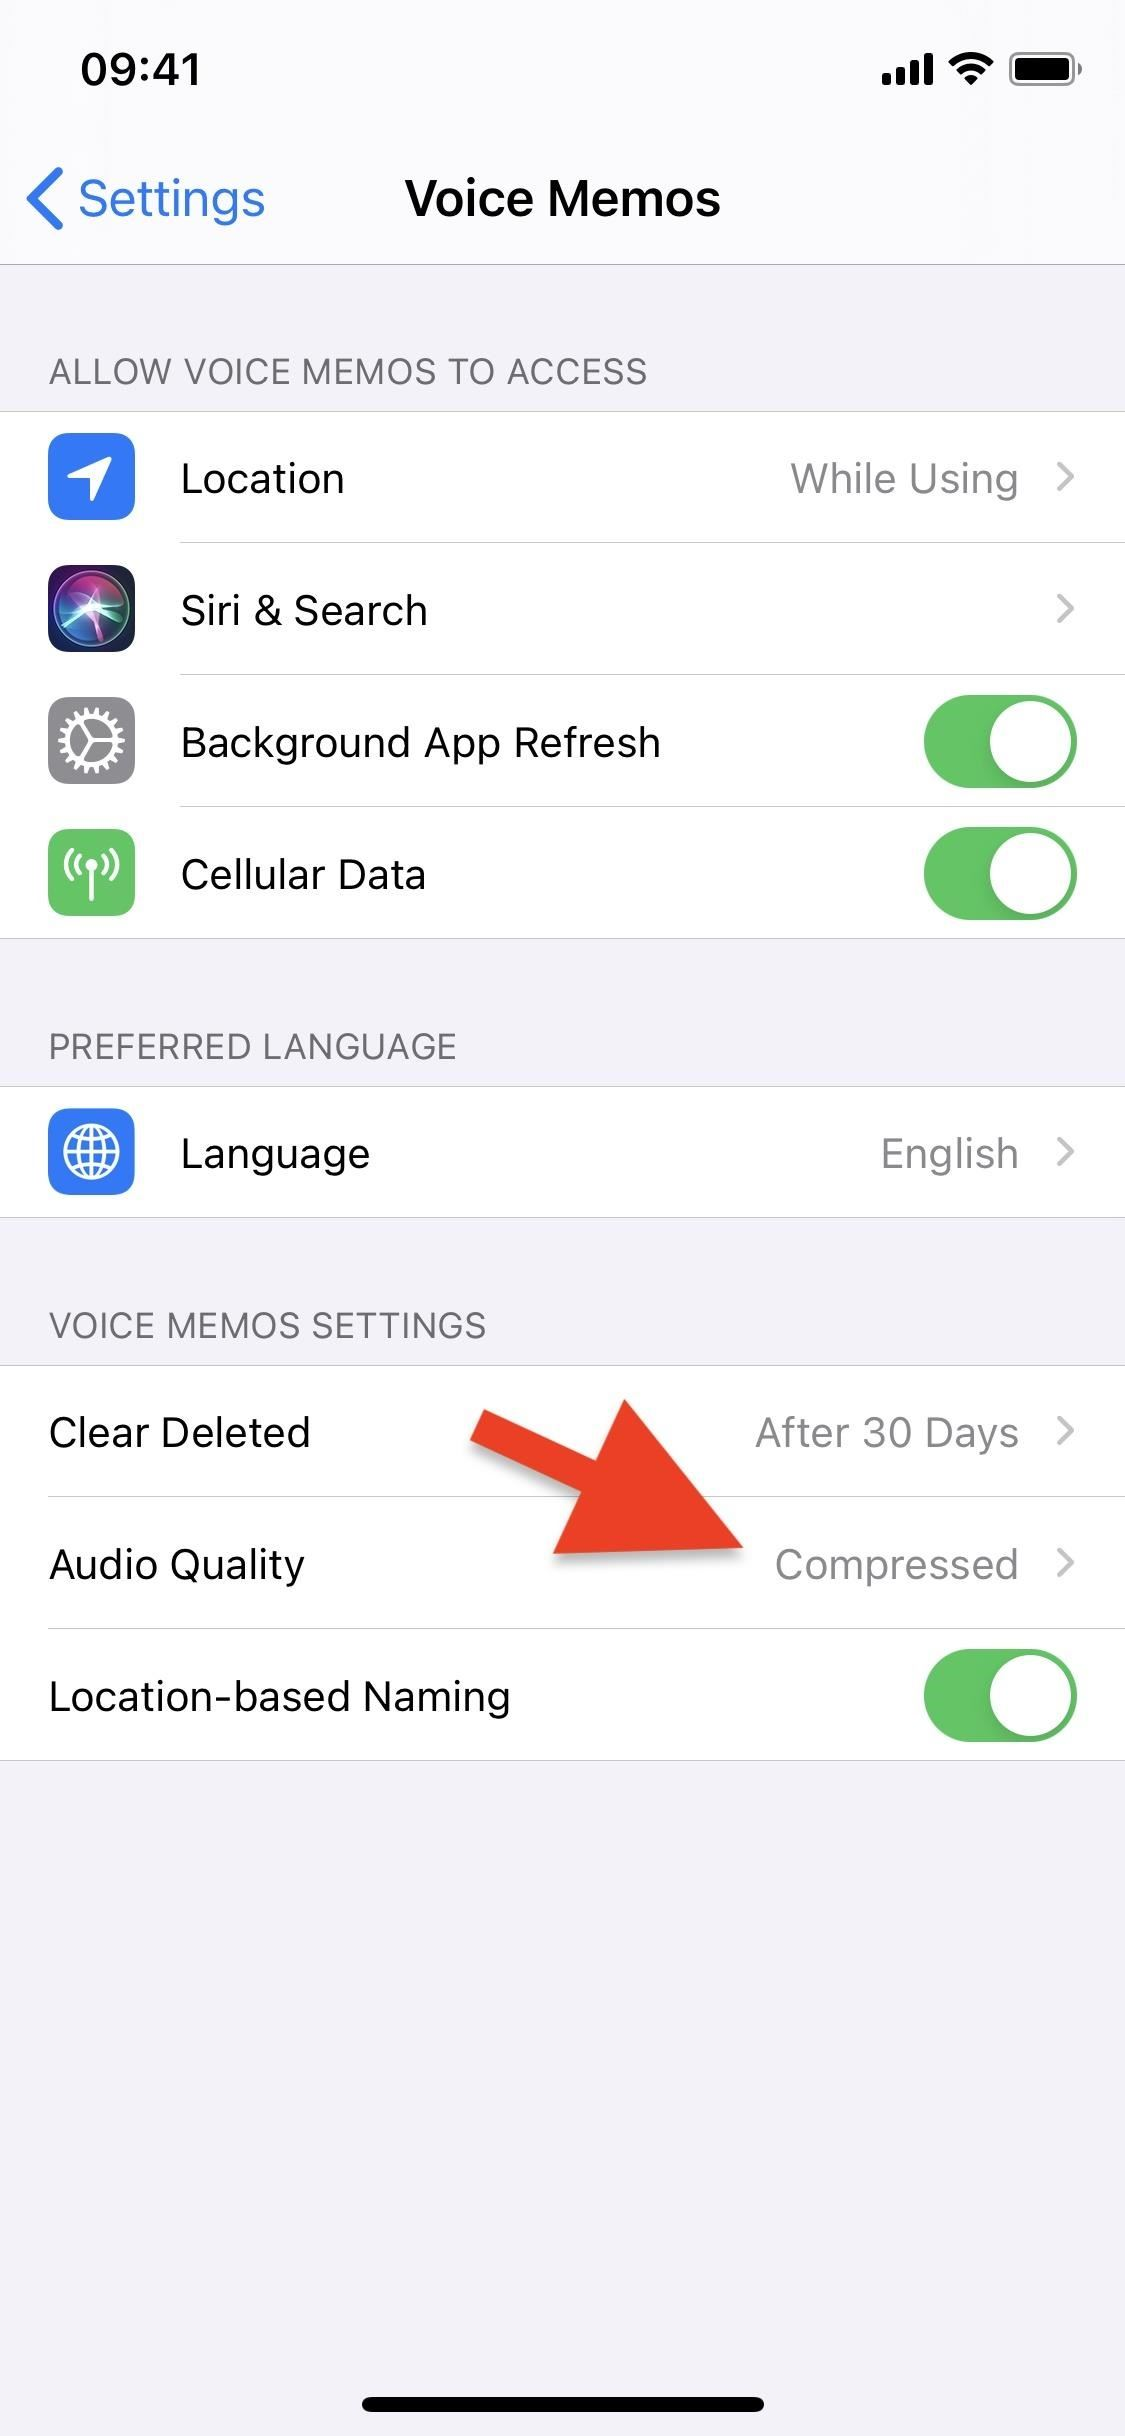 How to Improve Audio Quality in Voice Memos on Your iPhone to Get Better-Sounding Files